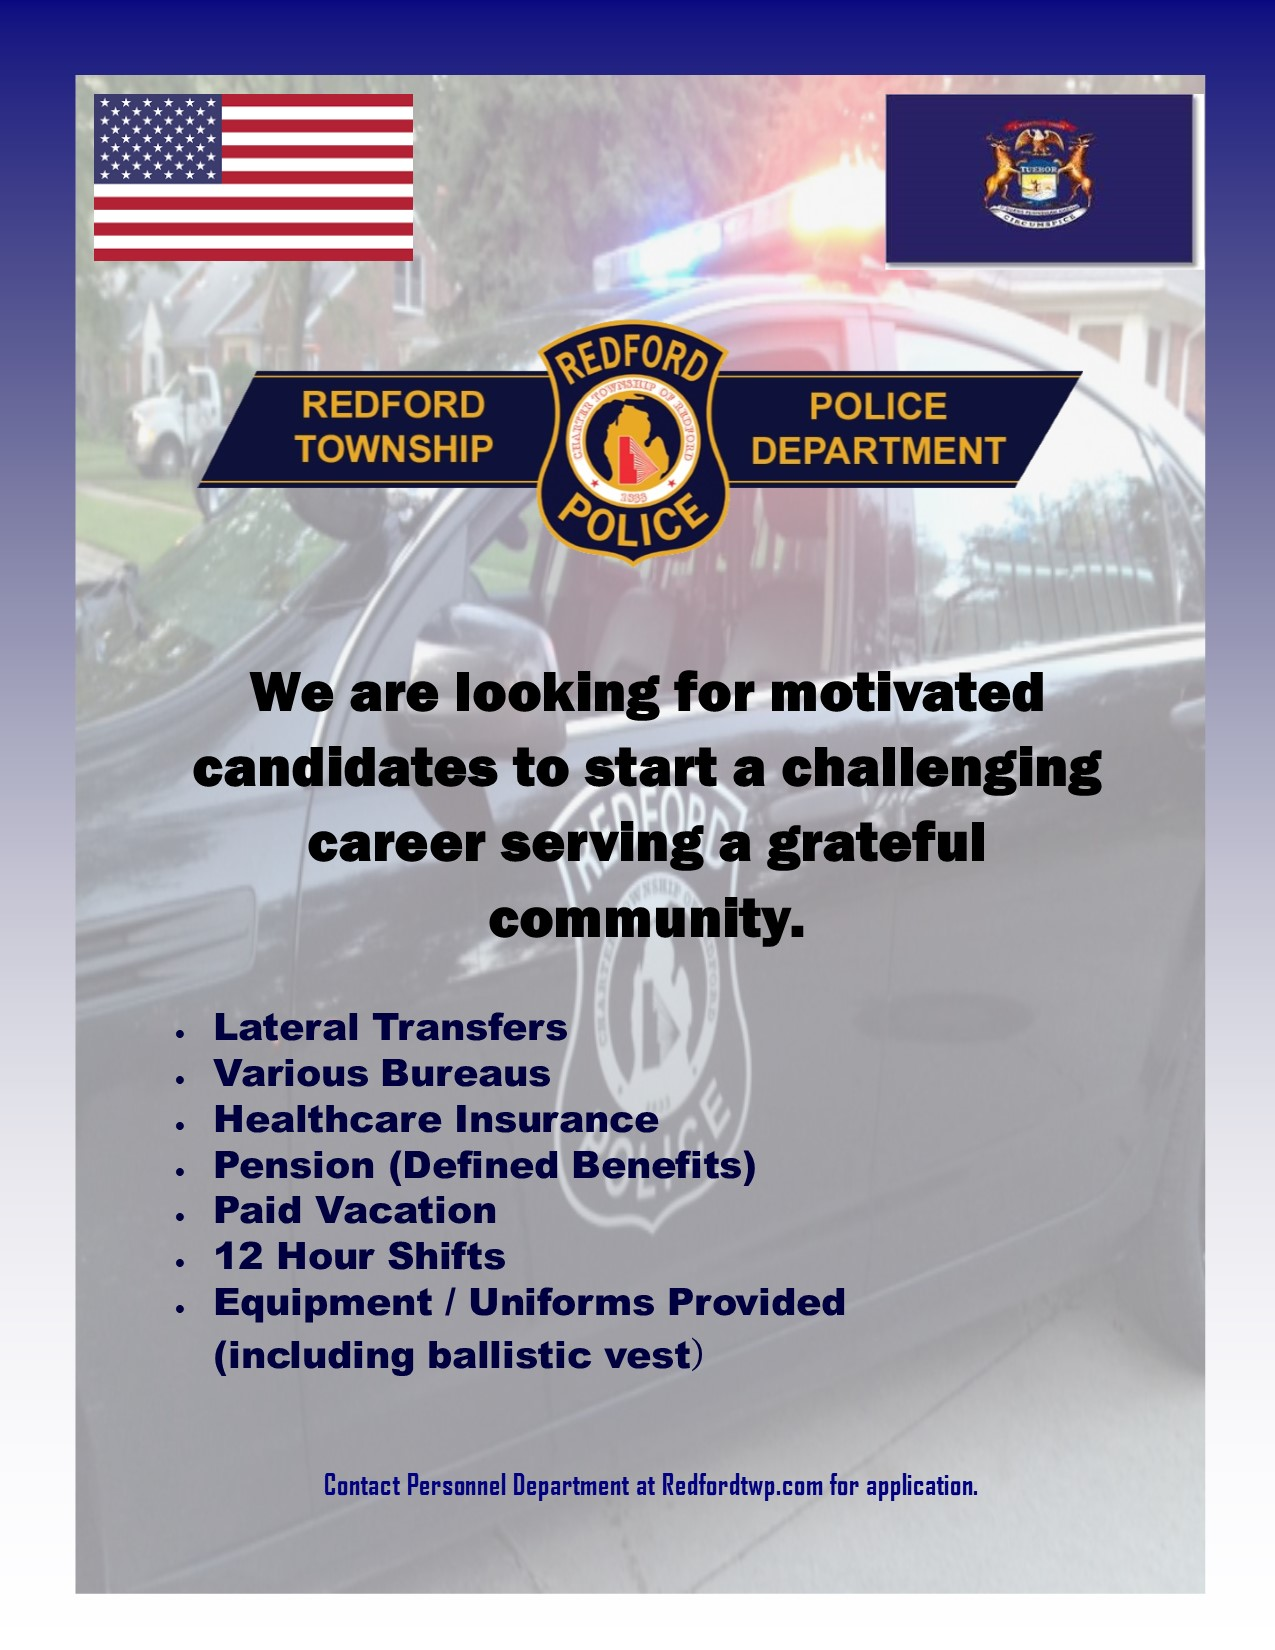 Redford Township Police Department Job Openings